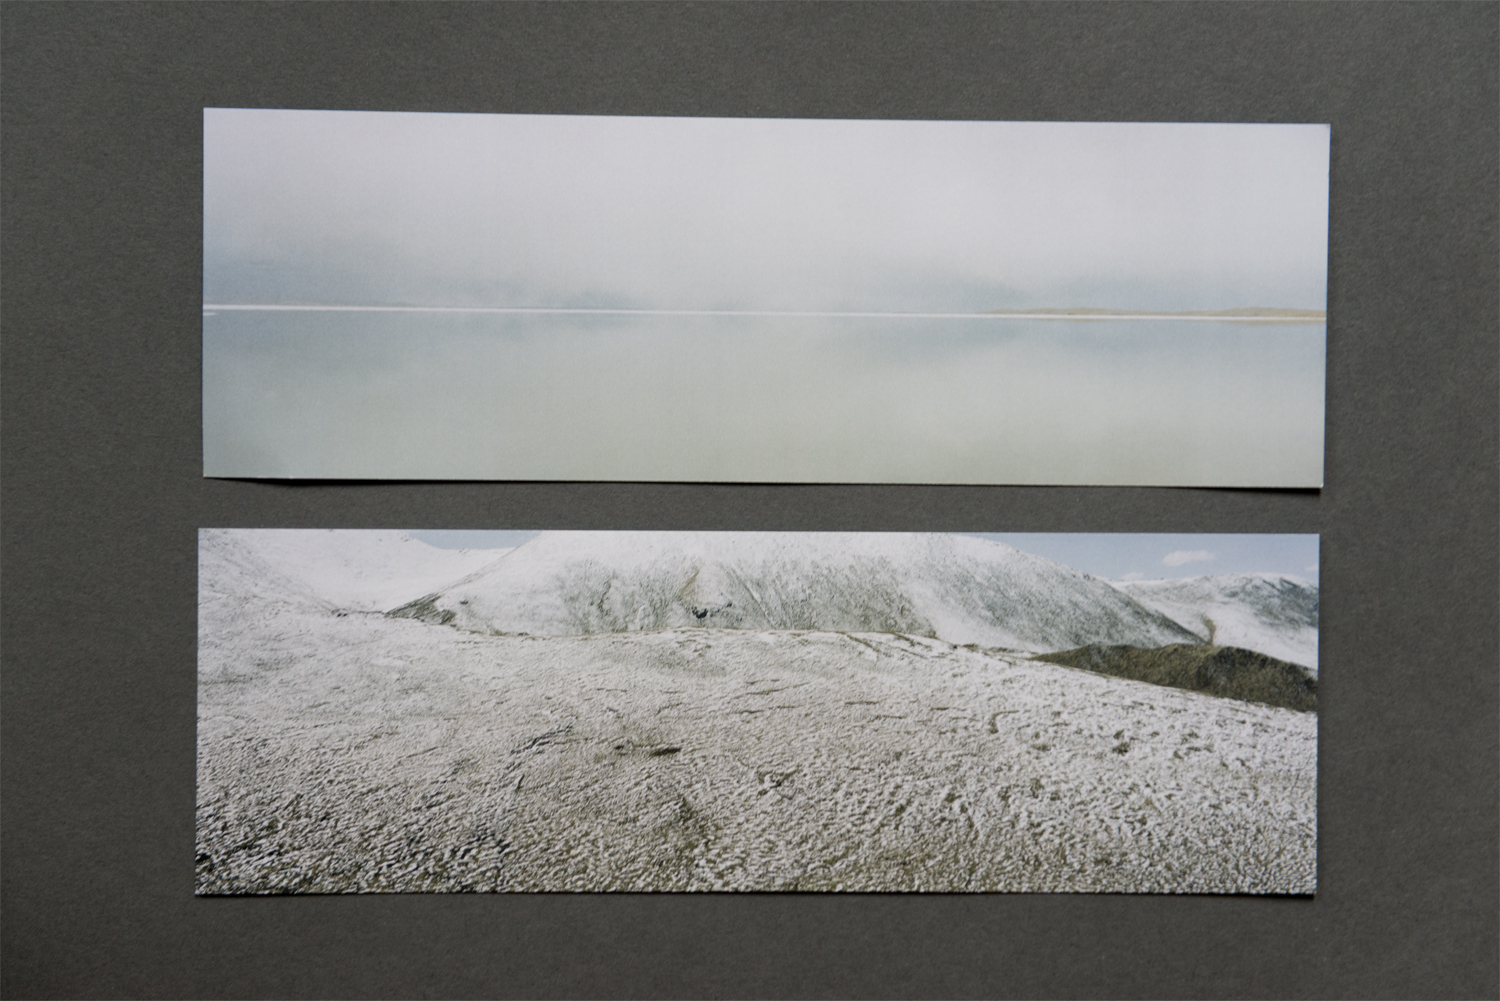 For unusually shaped photographs, the standard postcard just doesn't cut it. Ian Teh's elongated cards are perfectly suited to his panoramic images of China's Yellow River. The sturdy cardstock keeps them from feeling flimsy or bookmarkish and the lack of glossy finish allows for the full range of the subtle color palate to come through. Designed to accompany his Photoville exhibition, the cards comprise a set of five, each one with a different photograph on the front. The long shape allows for more information about the project than is common. The back of the card contains a project statement and a brief biography of the artist.